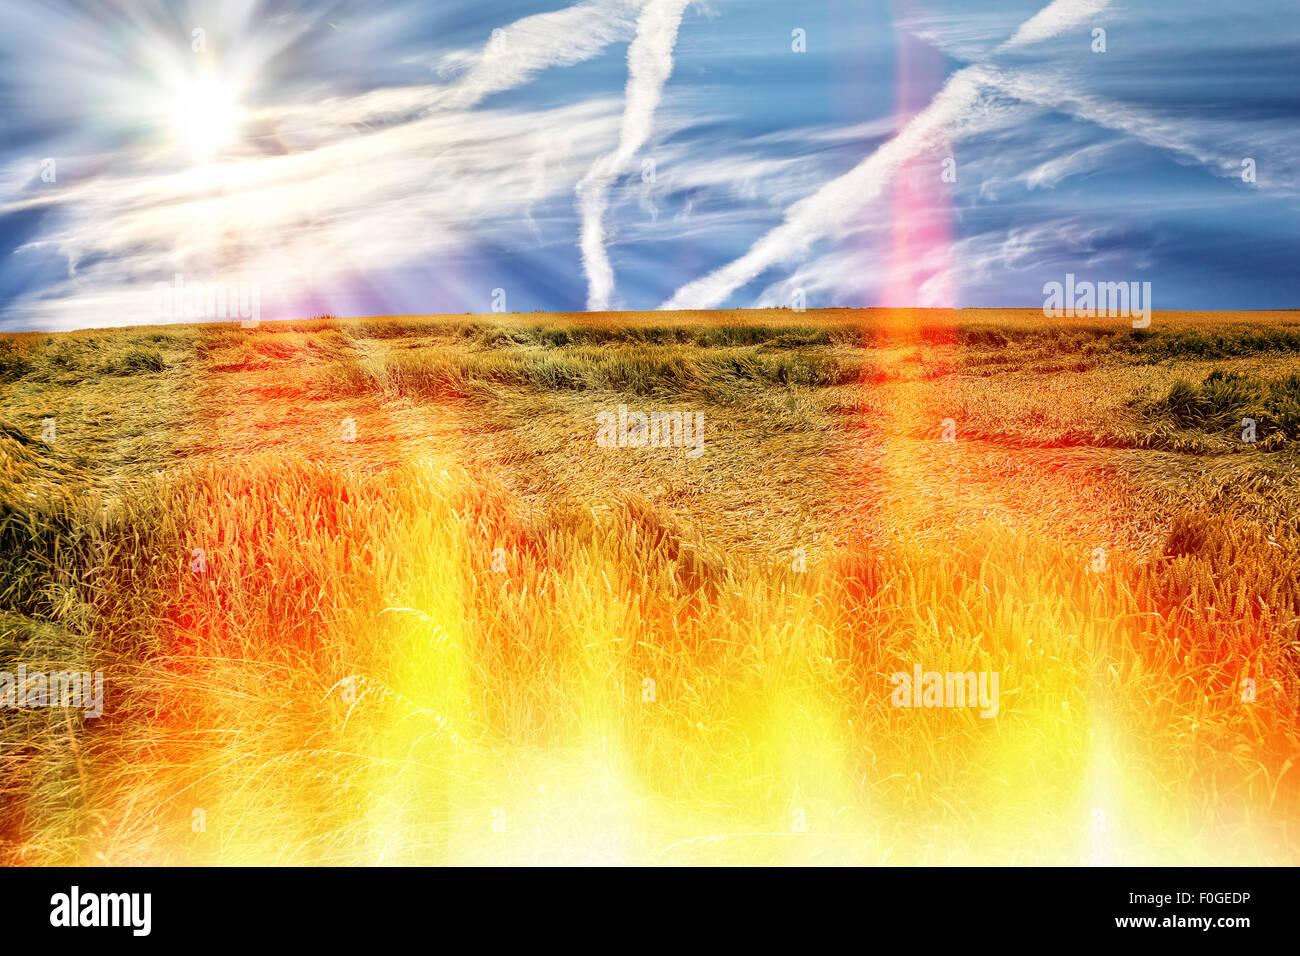 Hot weather and no rain makes drought and fires. - Stock Image